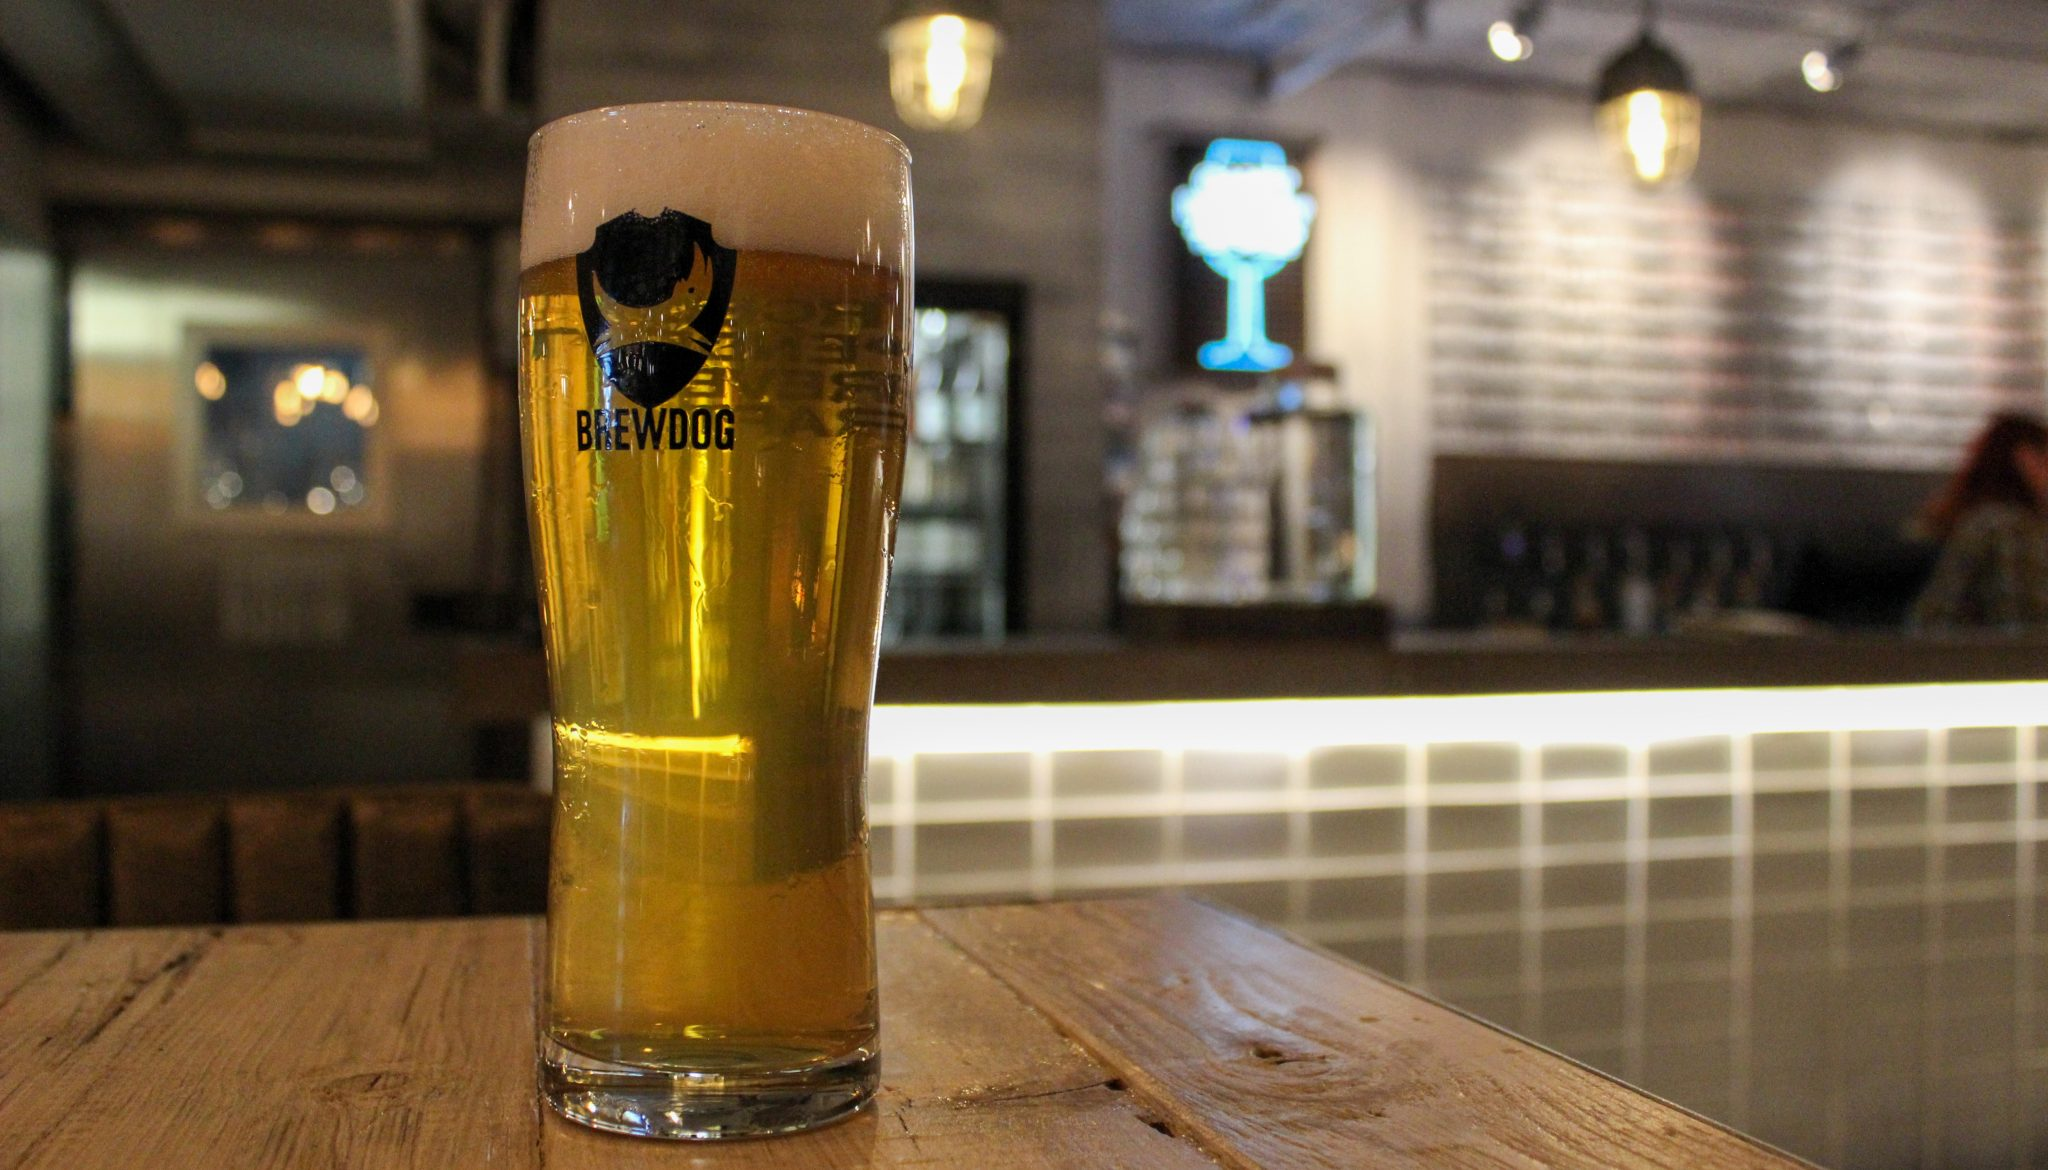 Pint of beer at the BrewDog Alcohol Free bar in Shoreditch, East London